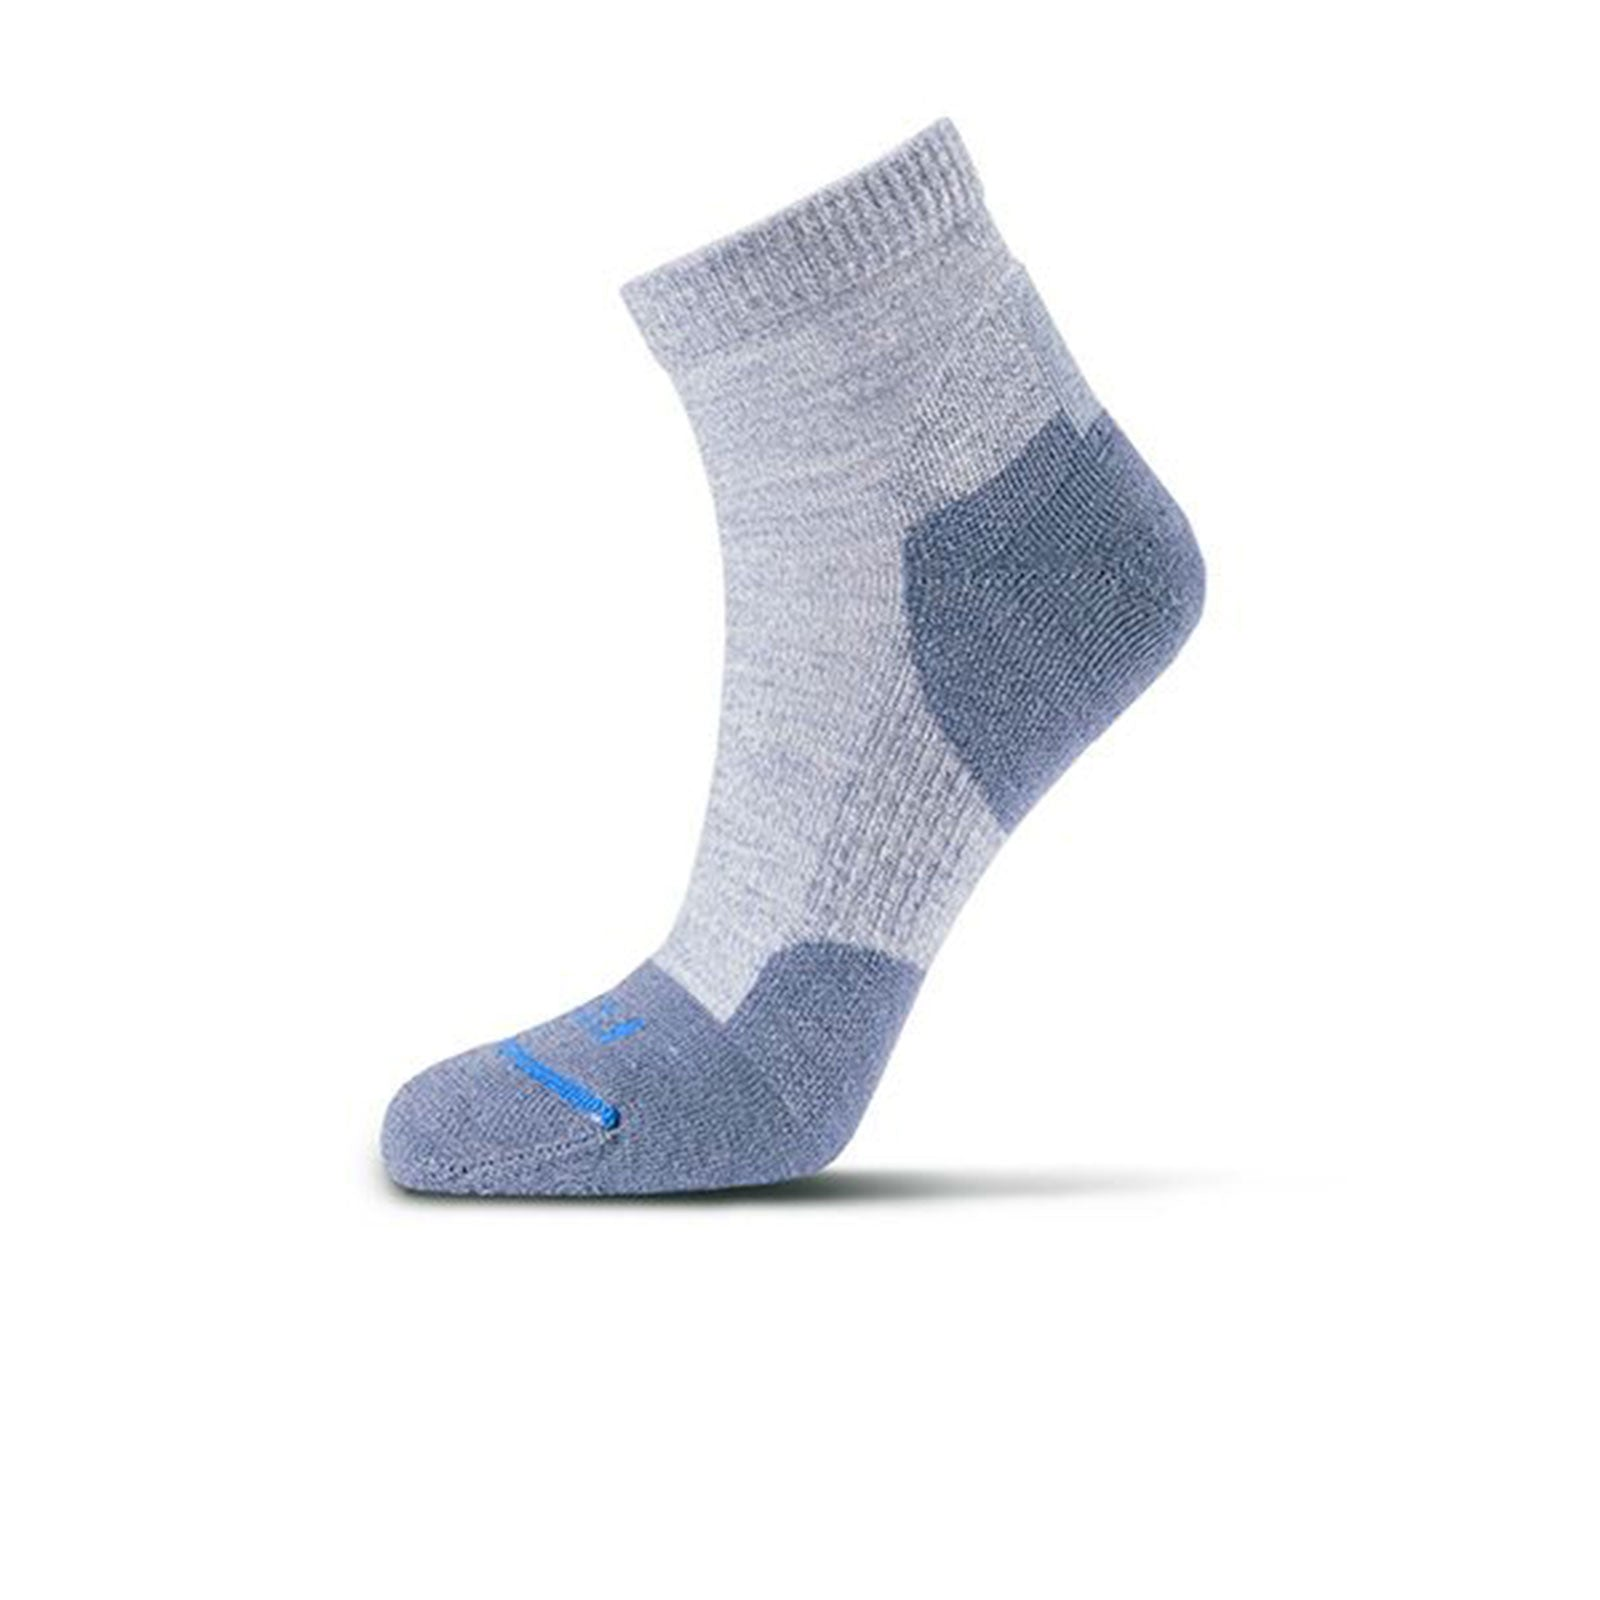 Fits Light Hiker Quarter (Women) - Ocean Socks - Perf - Mid Crew - The Heel Shoe Fitters